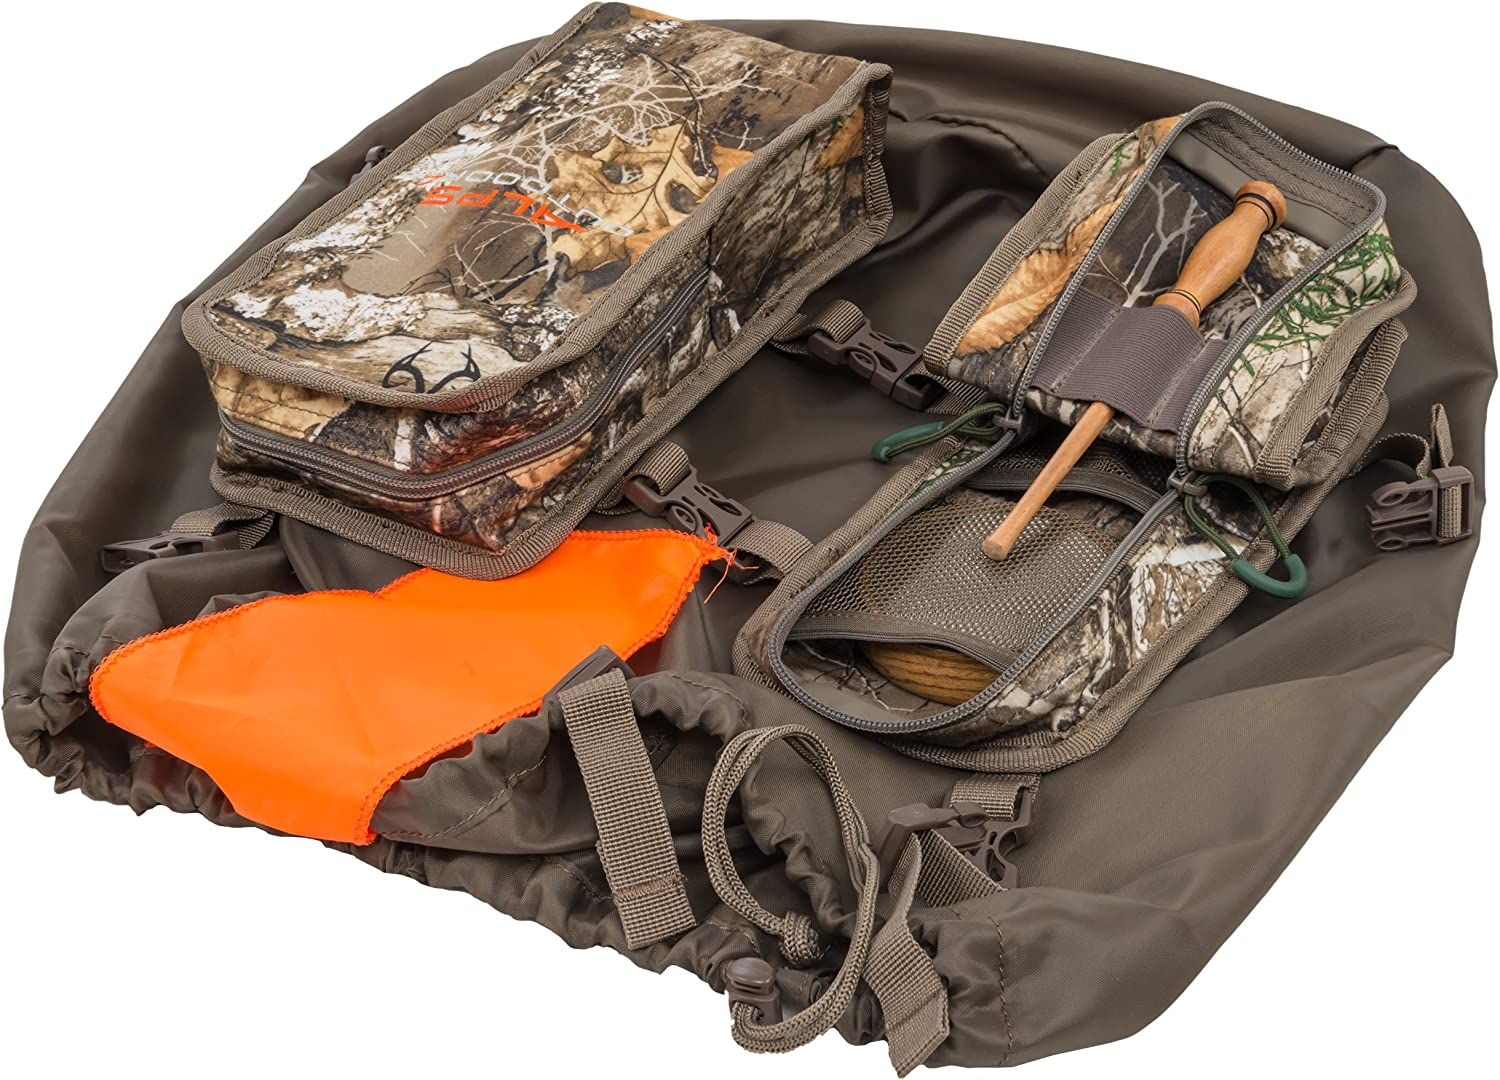 ALPS OutdoorZ Turkey Call Pockets & Game Bag, Realtree Edge